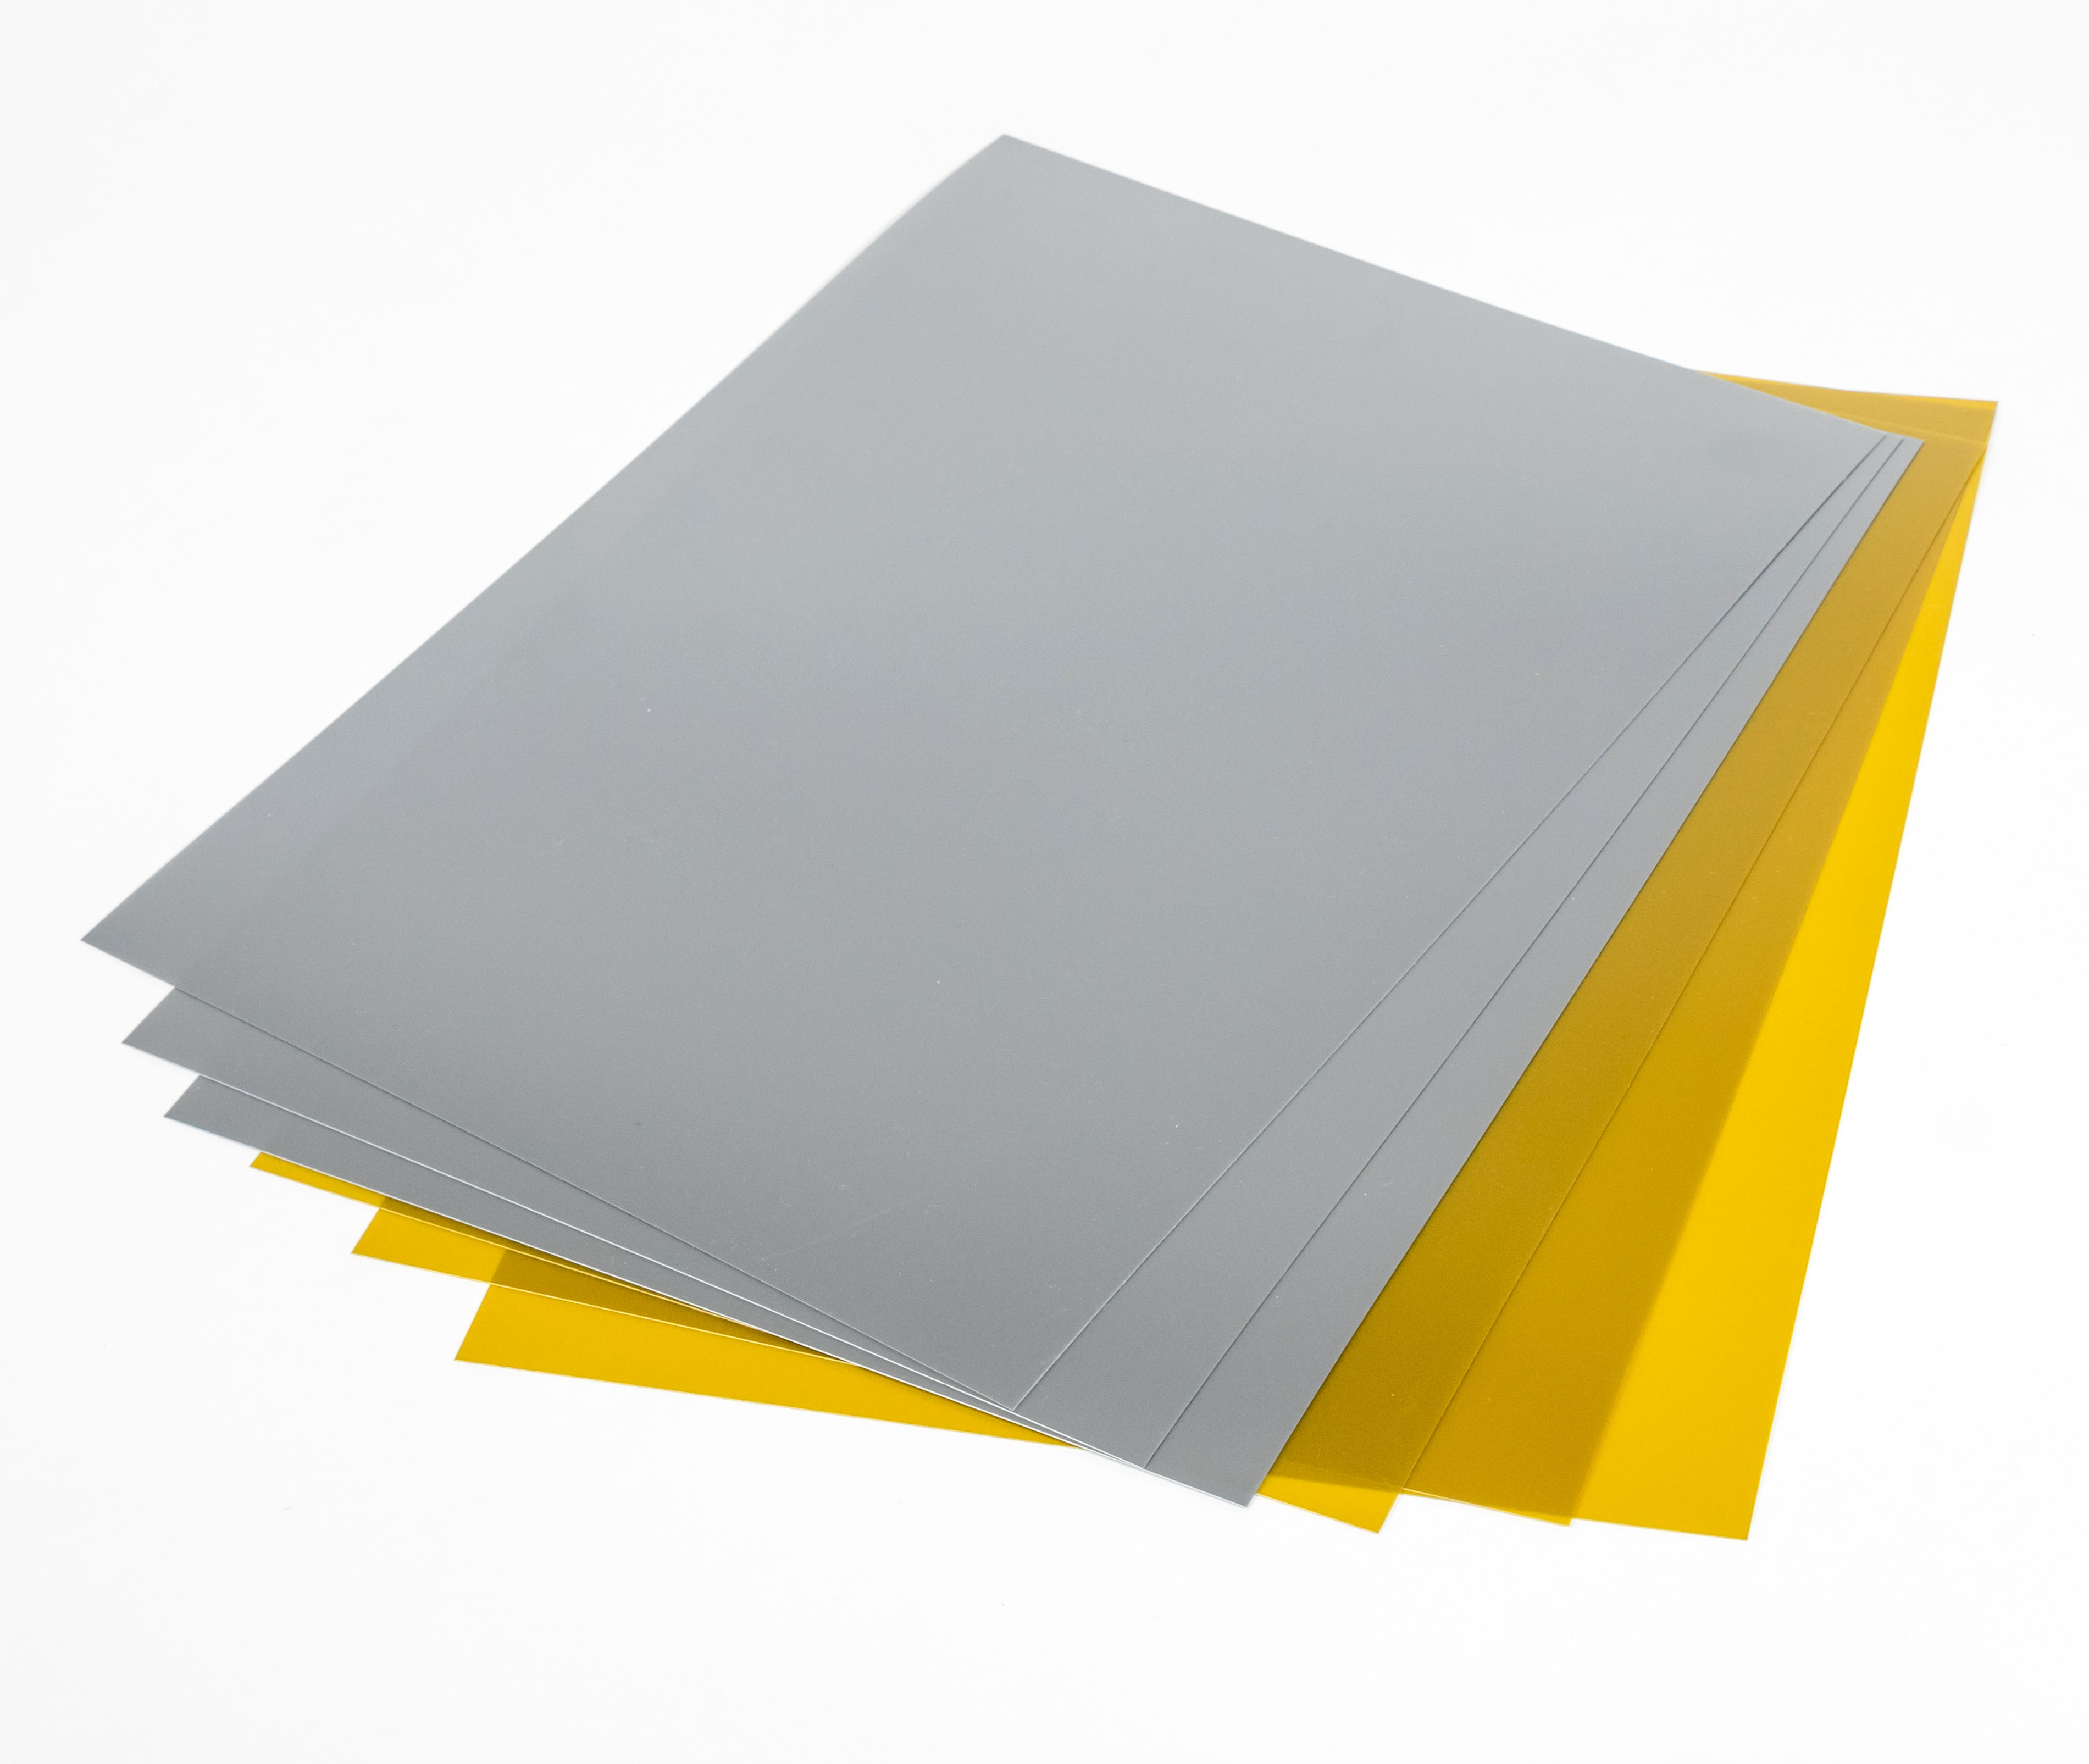 image about Printable Shrink Film identify Shrink Motion picture